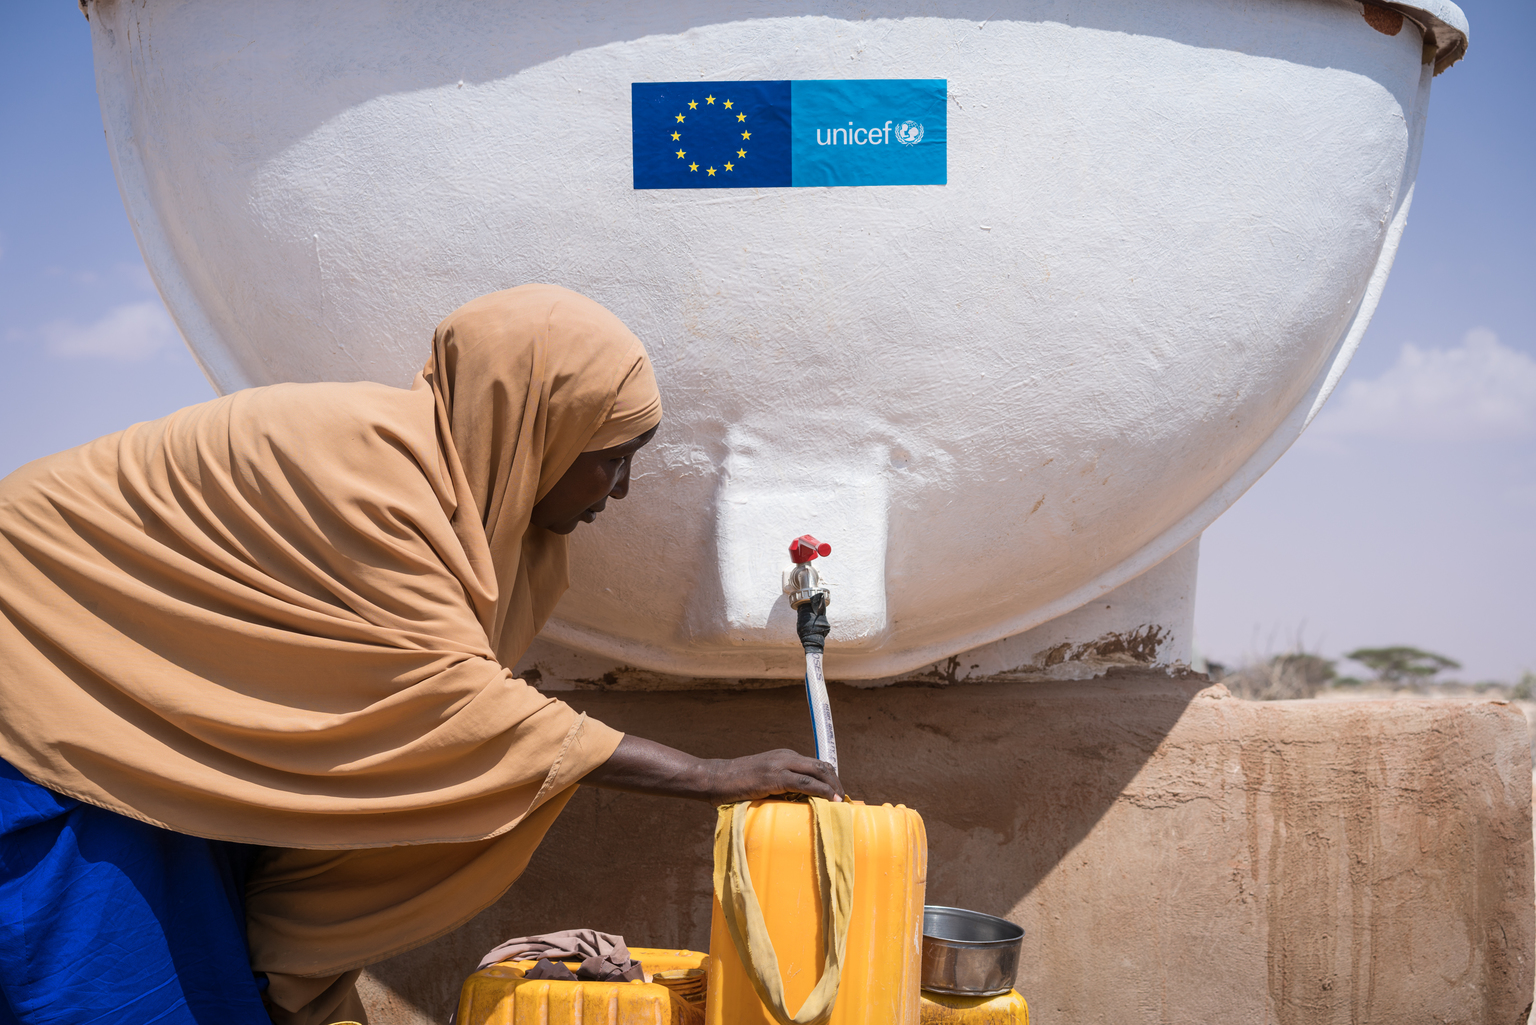 A young woman displaced from her home by the worsening drought fills containers with clean water to carry back to her new home in the internally displaced peoples camp in Galkayo, Somalia, Wednesday 12 April 2017. As of April 2017, the humanitarian situation in Somalia continues to deteriorate due to the severe drought, which started in the north in 2016 and is now affecting most of the country. Over 6.2 million people are facing acute food insecurity and 4.5 million people are estimated to be in need of water, sanitation and hygiene (WASH) assistance. The situation is especially grave for children. Close to one million children (under five) will be acutely malnourished in 2017, including 185,000 severely malnourished, which may increase to over 270,000 if famine is not averted. Severely malnourished children are nine times more likely to die of killer diseases like cholera / acute watery diarrhea and measles, which are spreading. The drought is also uprooting people, with more than 530,000 displaced since November 2016, adding to the 1.1 million already internally displaced (IDPs). This includes 278,000 new IDPs in the month of March alone, with 72,000 new arrivals in Mogadishu and 70,000 in Baidoa. In addition, the number of people crossing into Kenya is increasing. The rapid scale of displacement increases the risk of family separation and gender-based violence. Children are also dropping out of school, with 50,000 children reported to have stopped going to school, and an additional 40,000 at risk of being forced to interrupt their schooling. The Gu (April-June) rains are slowly unfolding, bringing much needed relief to parts of the country. But the rains also spell danger for children. If they come in full they will inflict further misery on children living in flimsy, makeshift shelters made of twigs and cloth or tarps. If the Gu rains fail, and if assistance doesn't reach families, more people will be forced off their land into displacement camps. Outbr